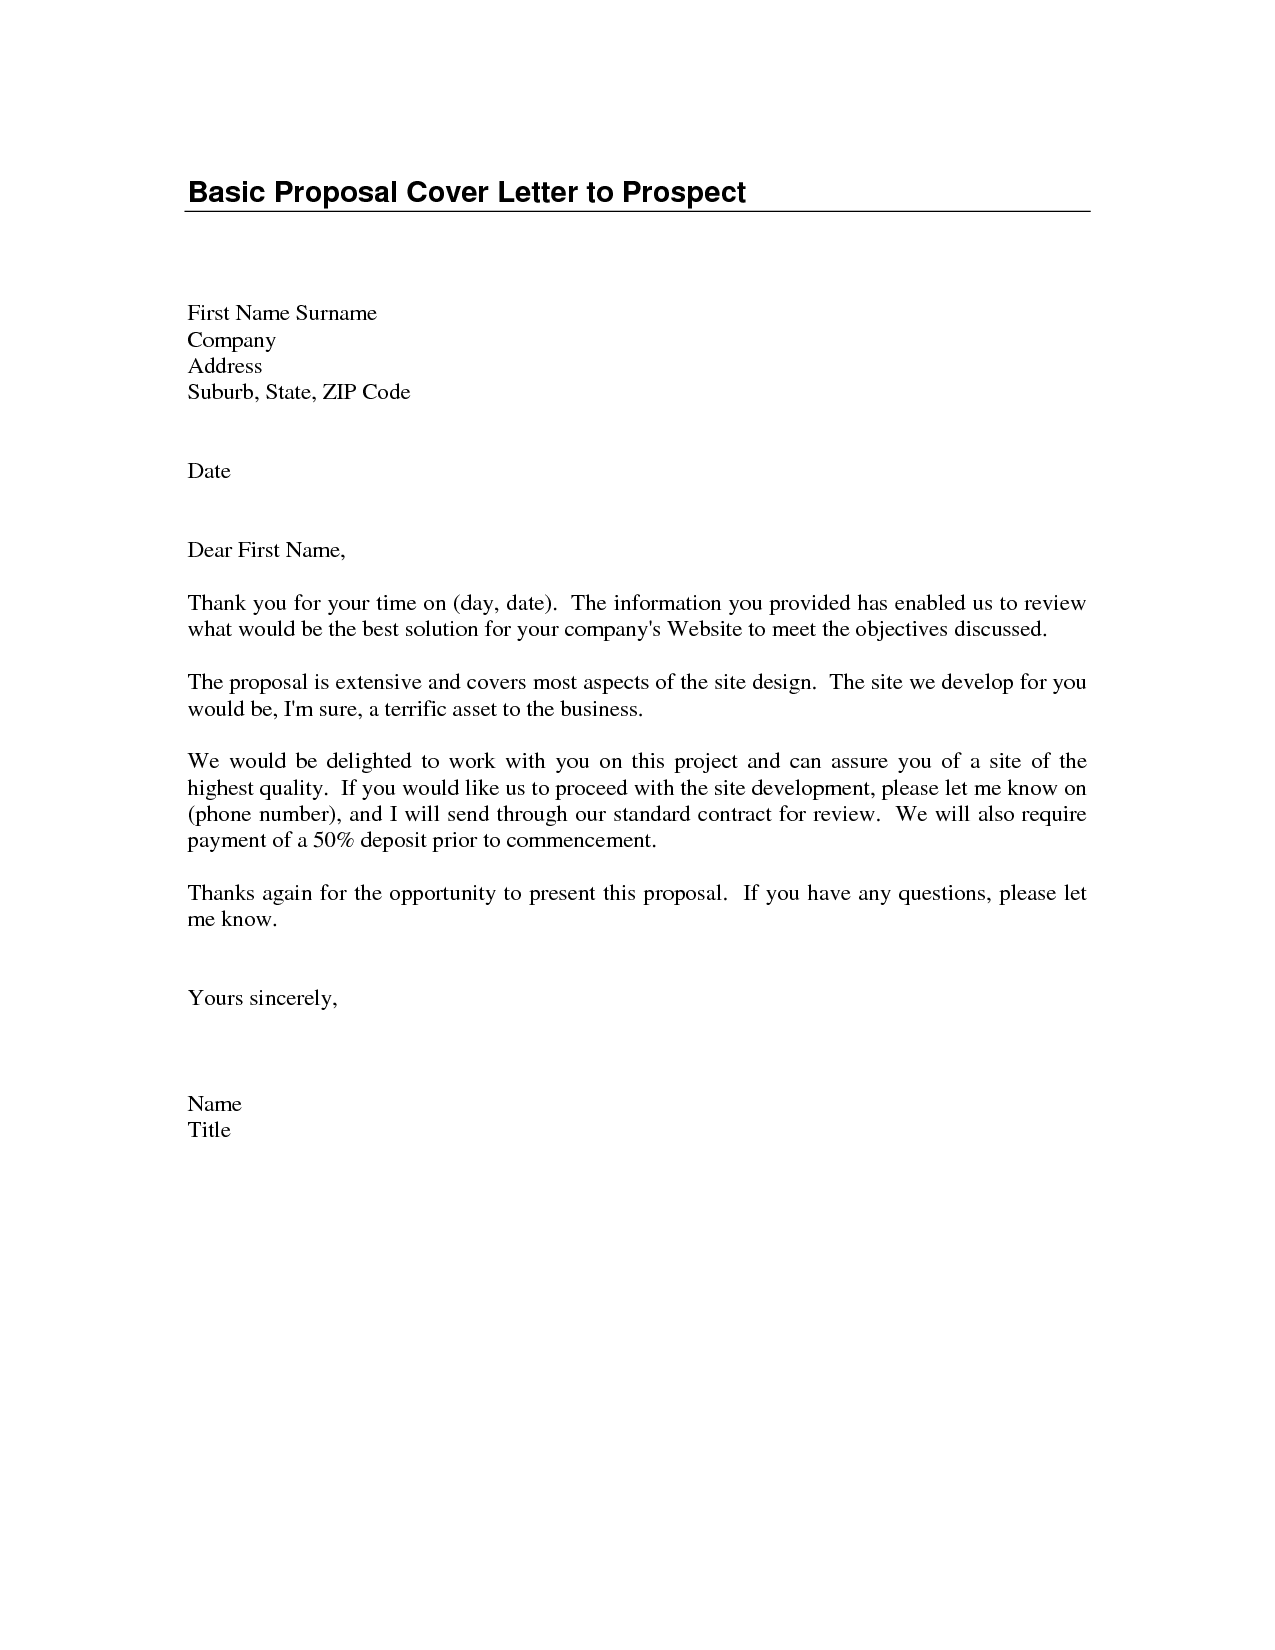 quick cover letter template  sample basic cover letter - Orgsan.celikdemirsan.com